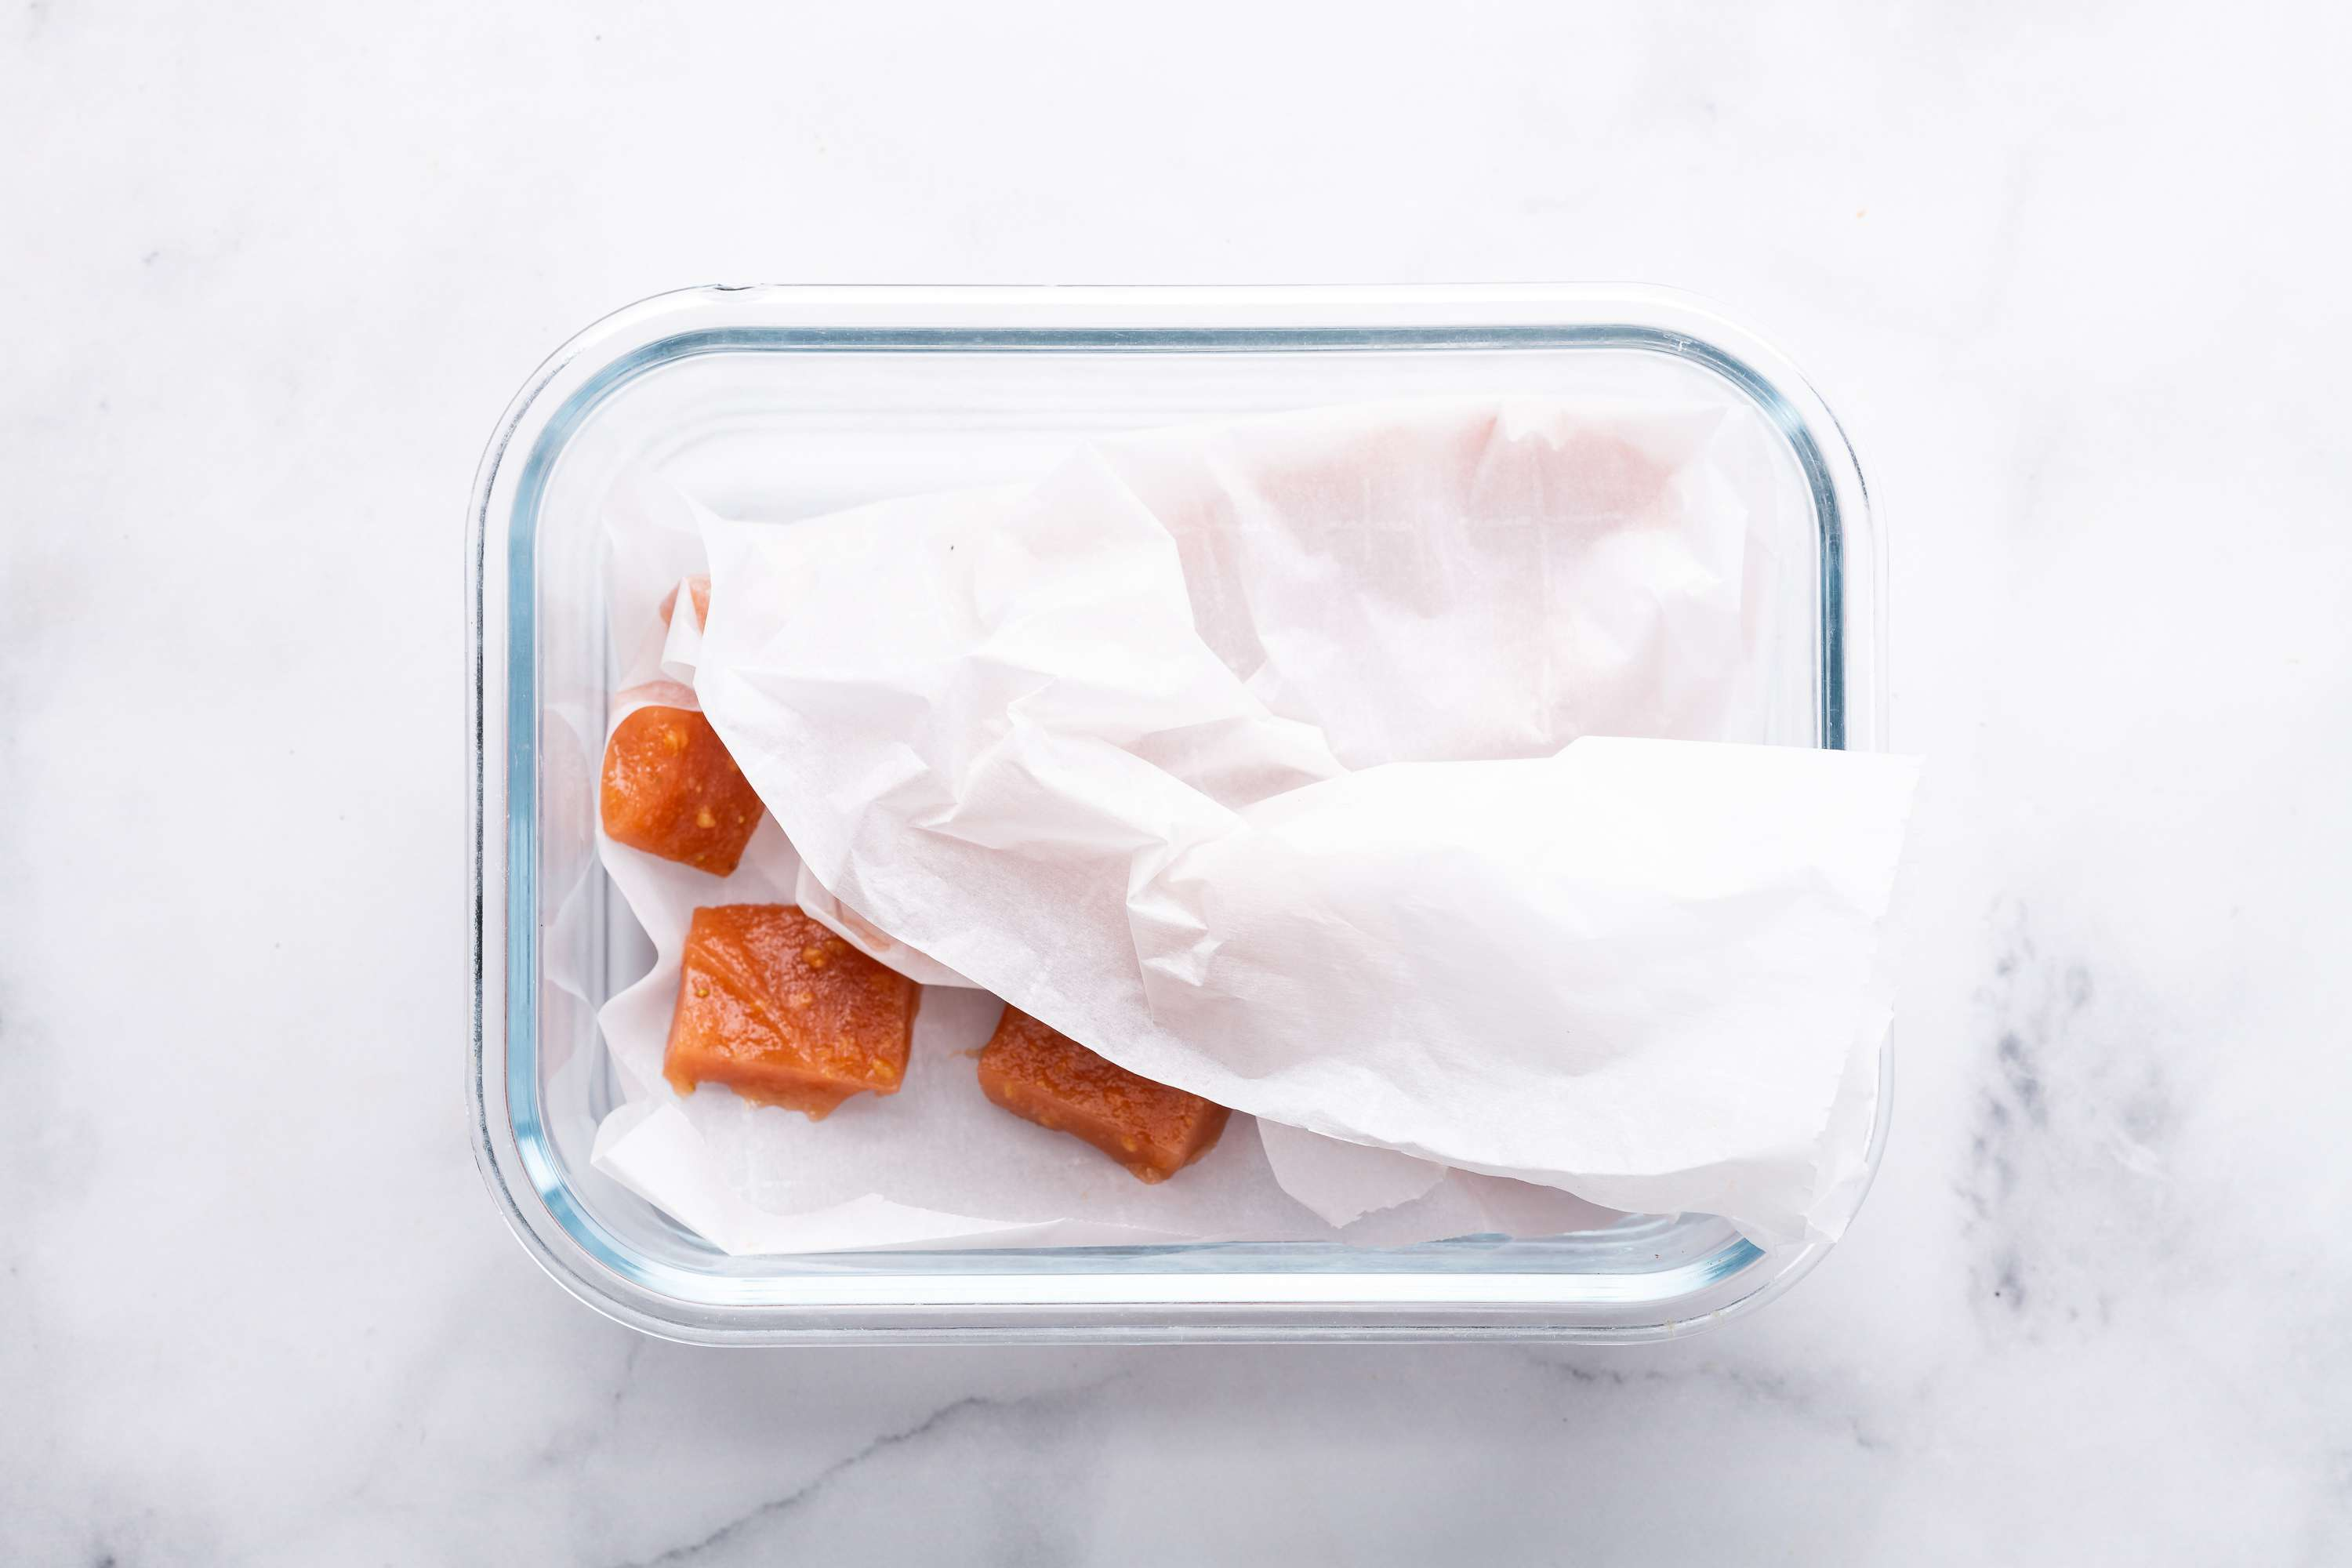 Indian Guava Cheese pieces in a glass container